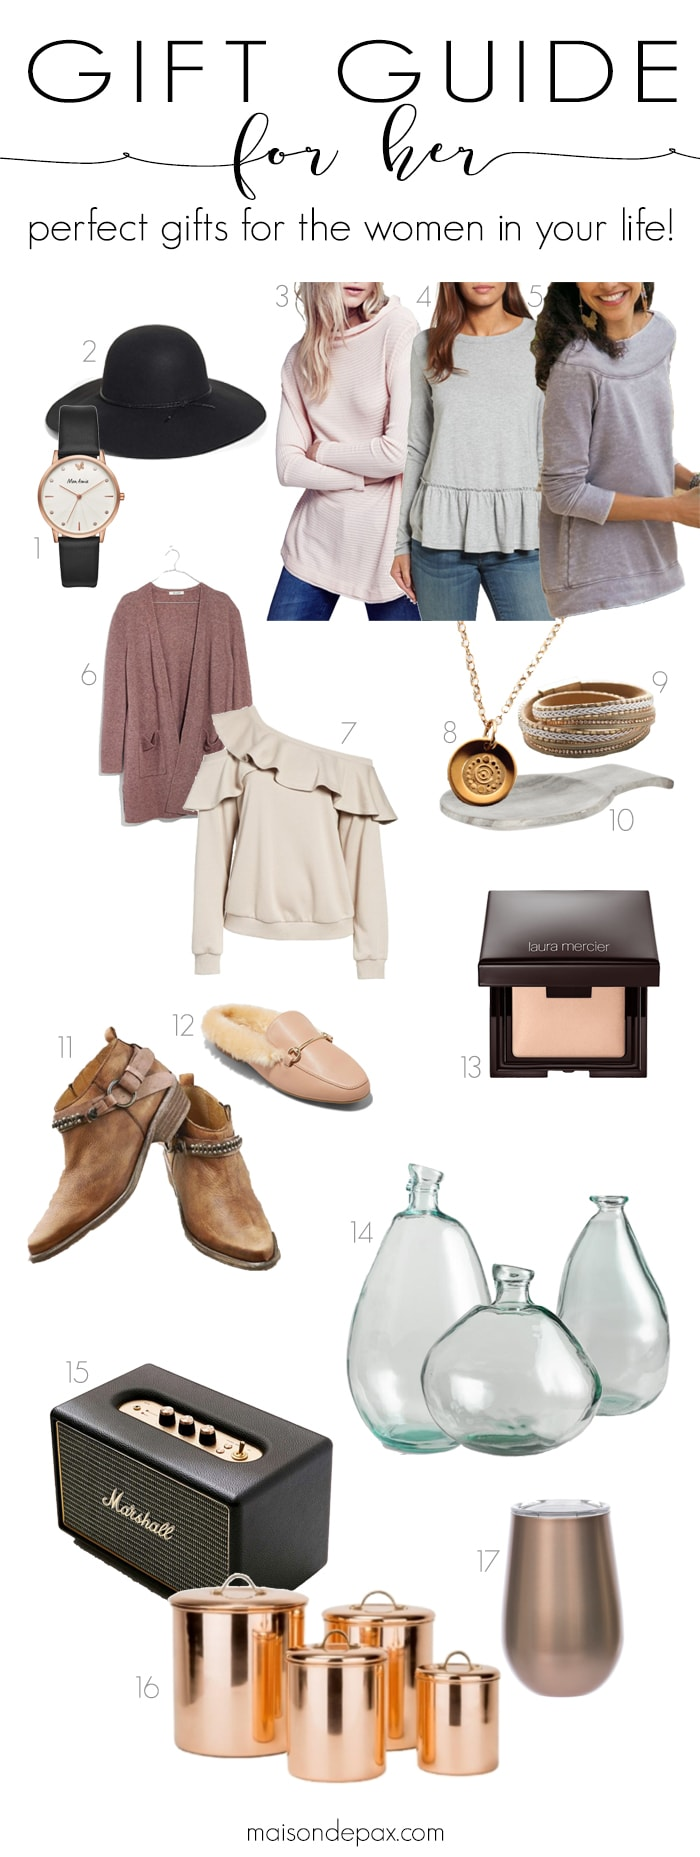 Looking for the perfect gift for her? These gift ideas for your wife, mom, sister, or friend capture the casually elegant look and feel every woman wants #giftsforher